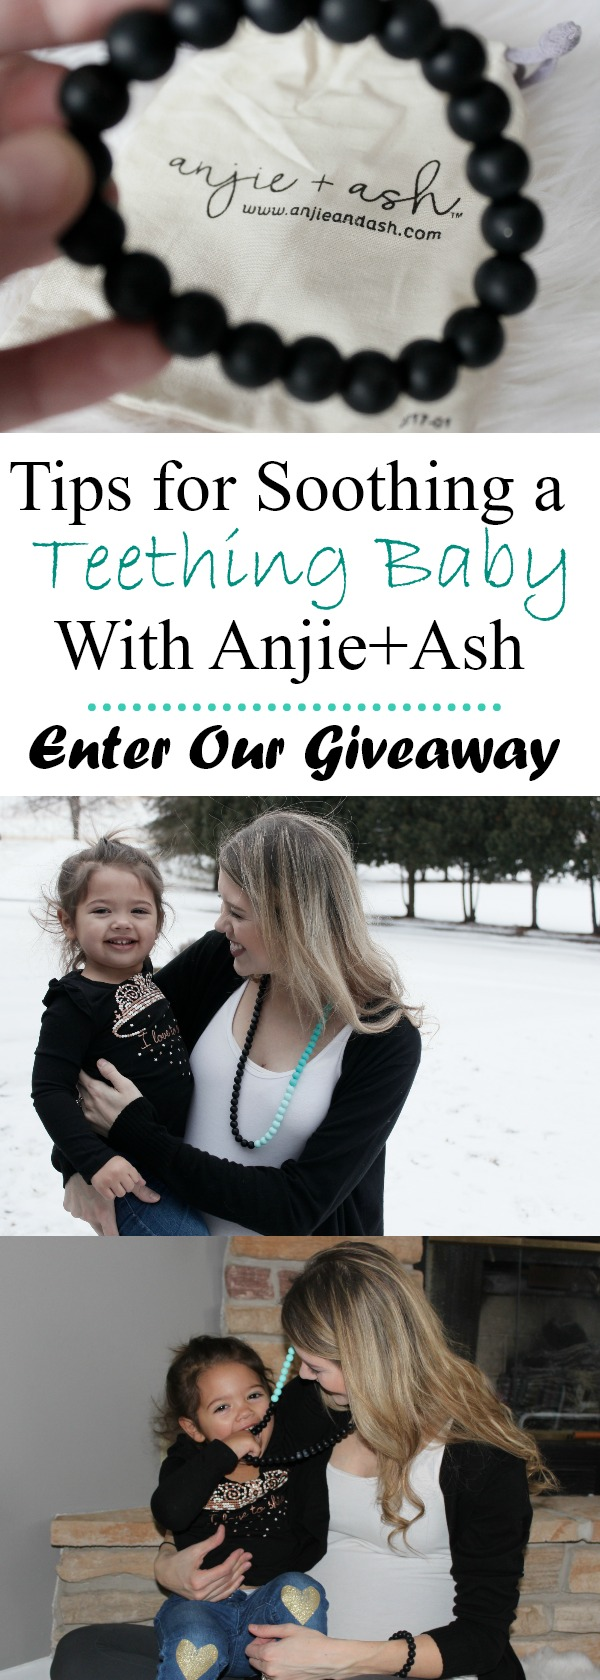 Anjie + Ash is a teething jewelry line with a mission to make the most fashionable teething jewelry soothing for both mama and baby.